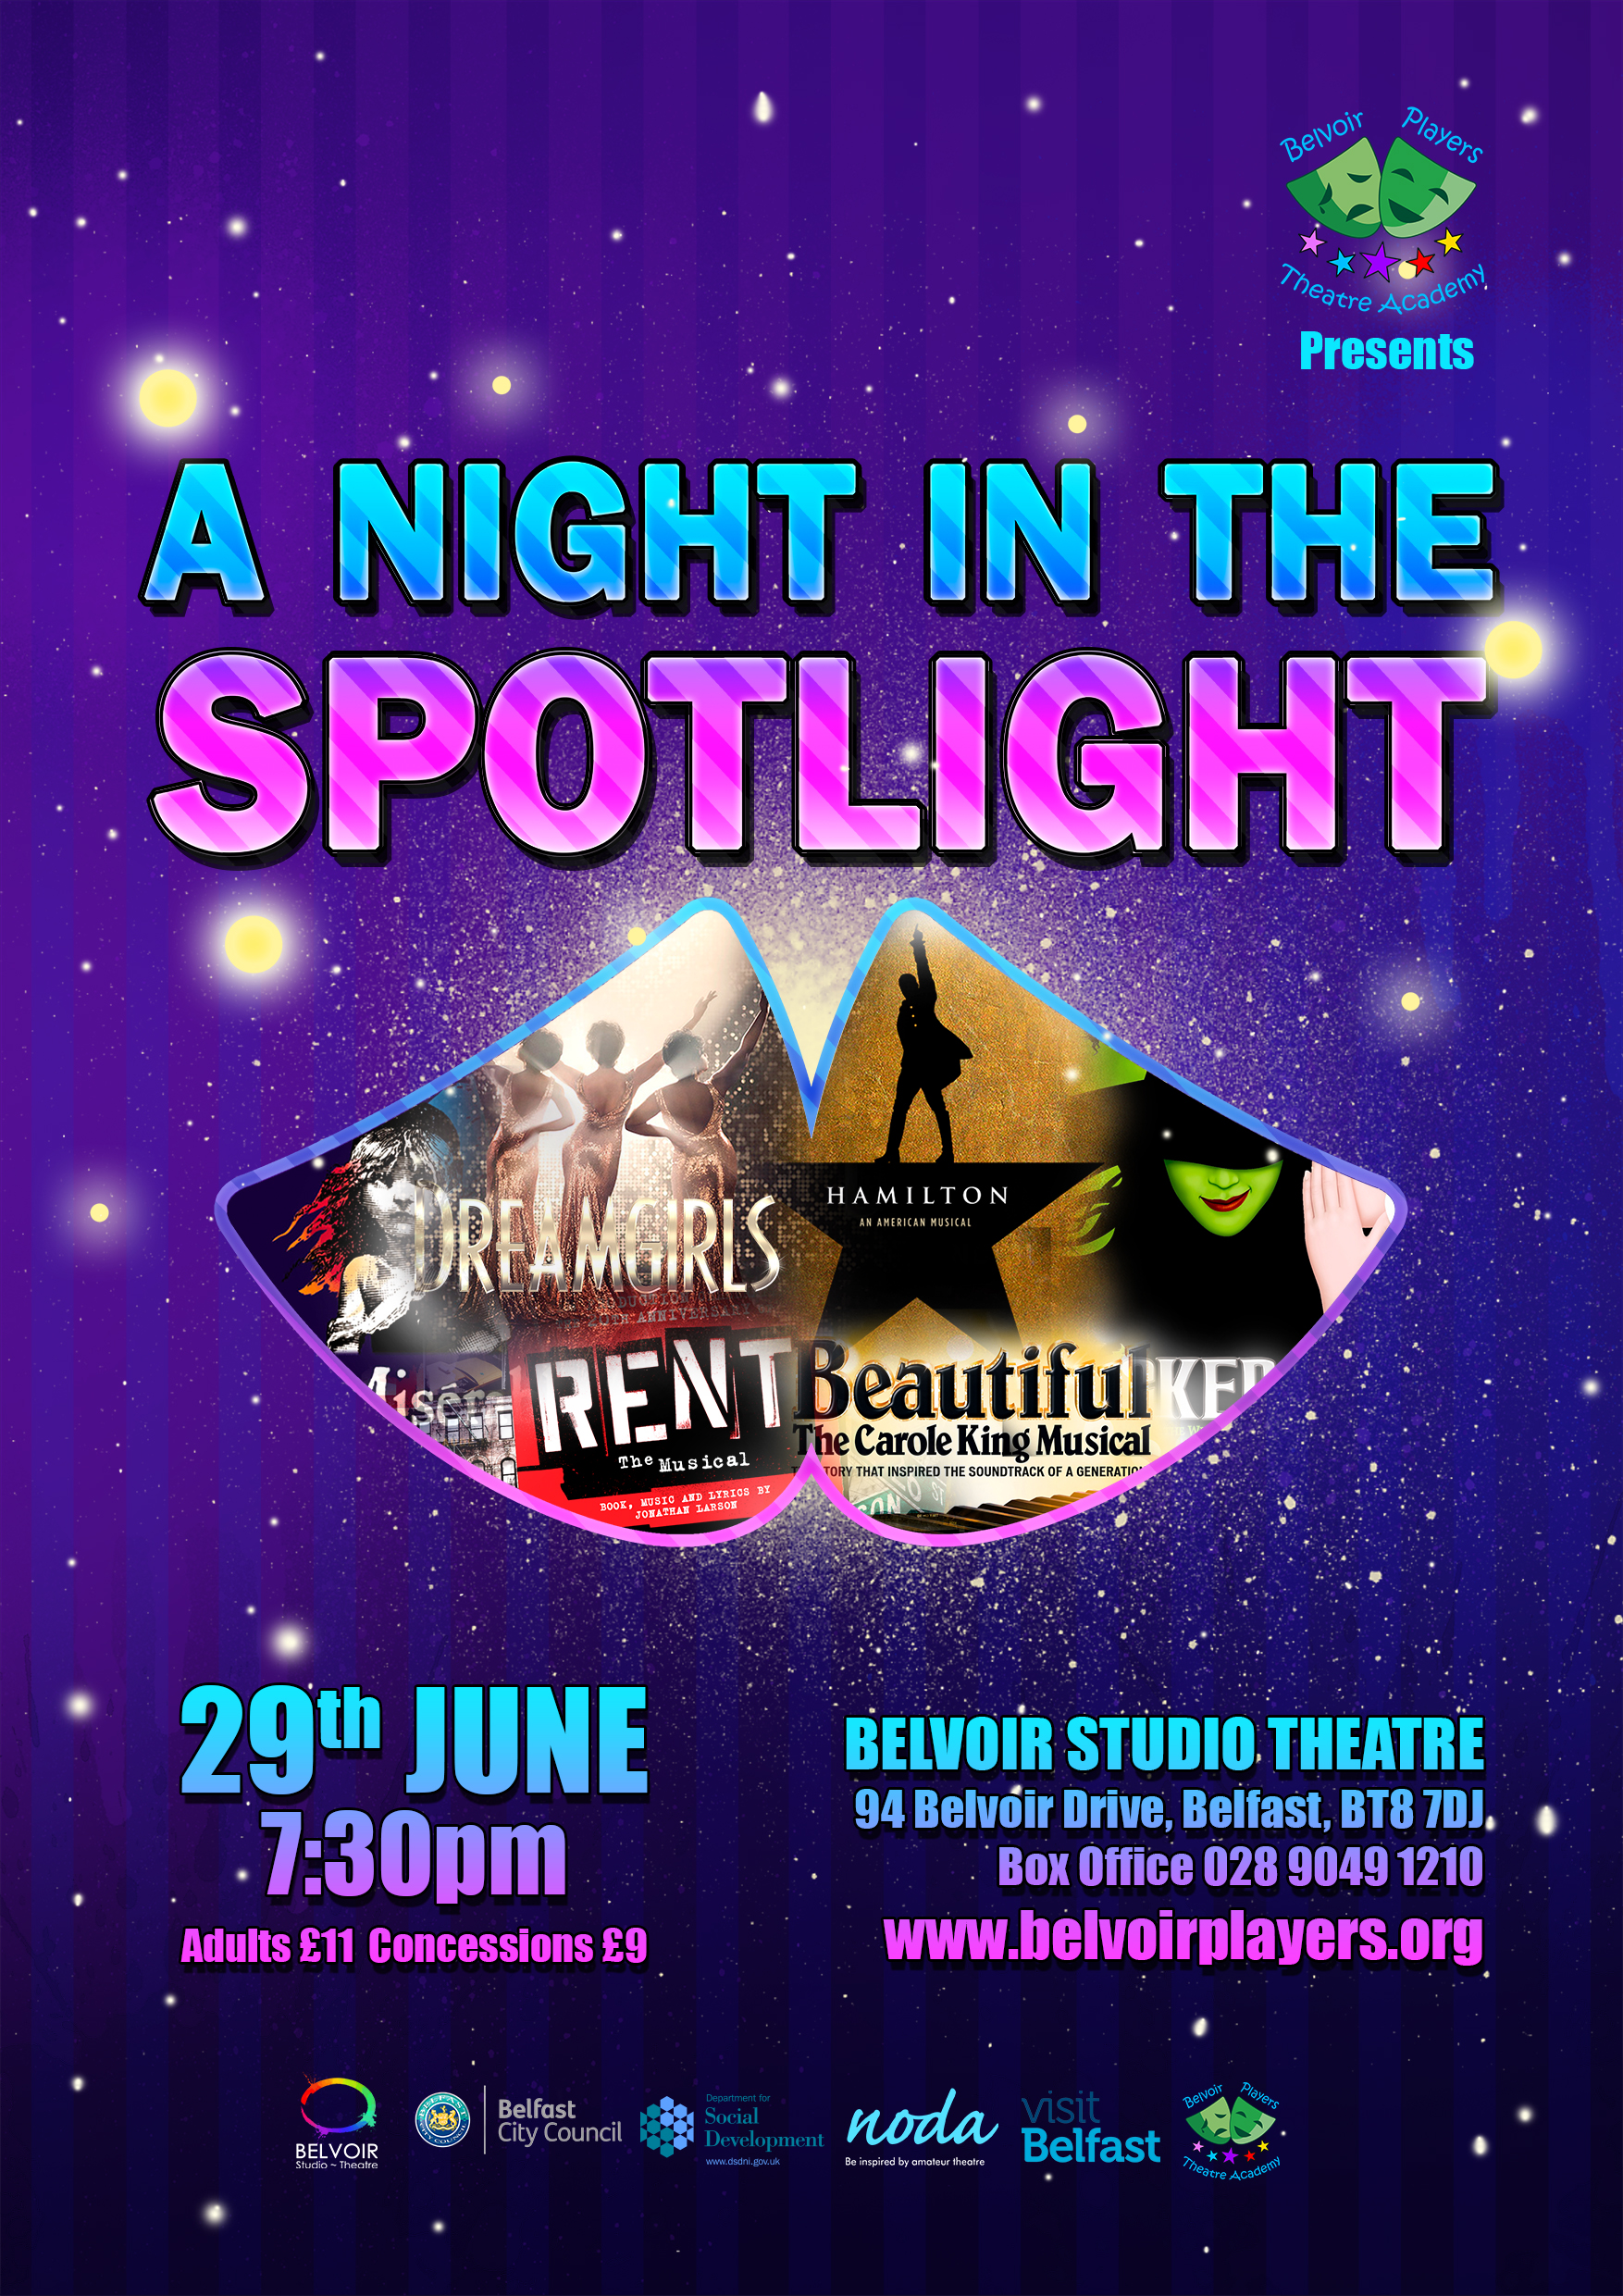 night in the Spotlight poster 2018 small